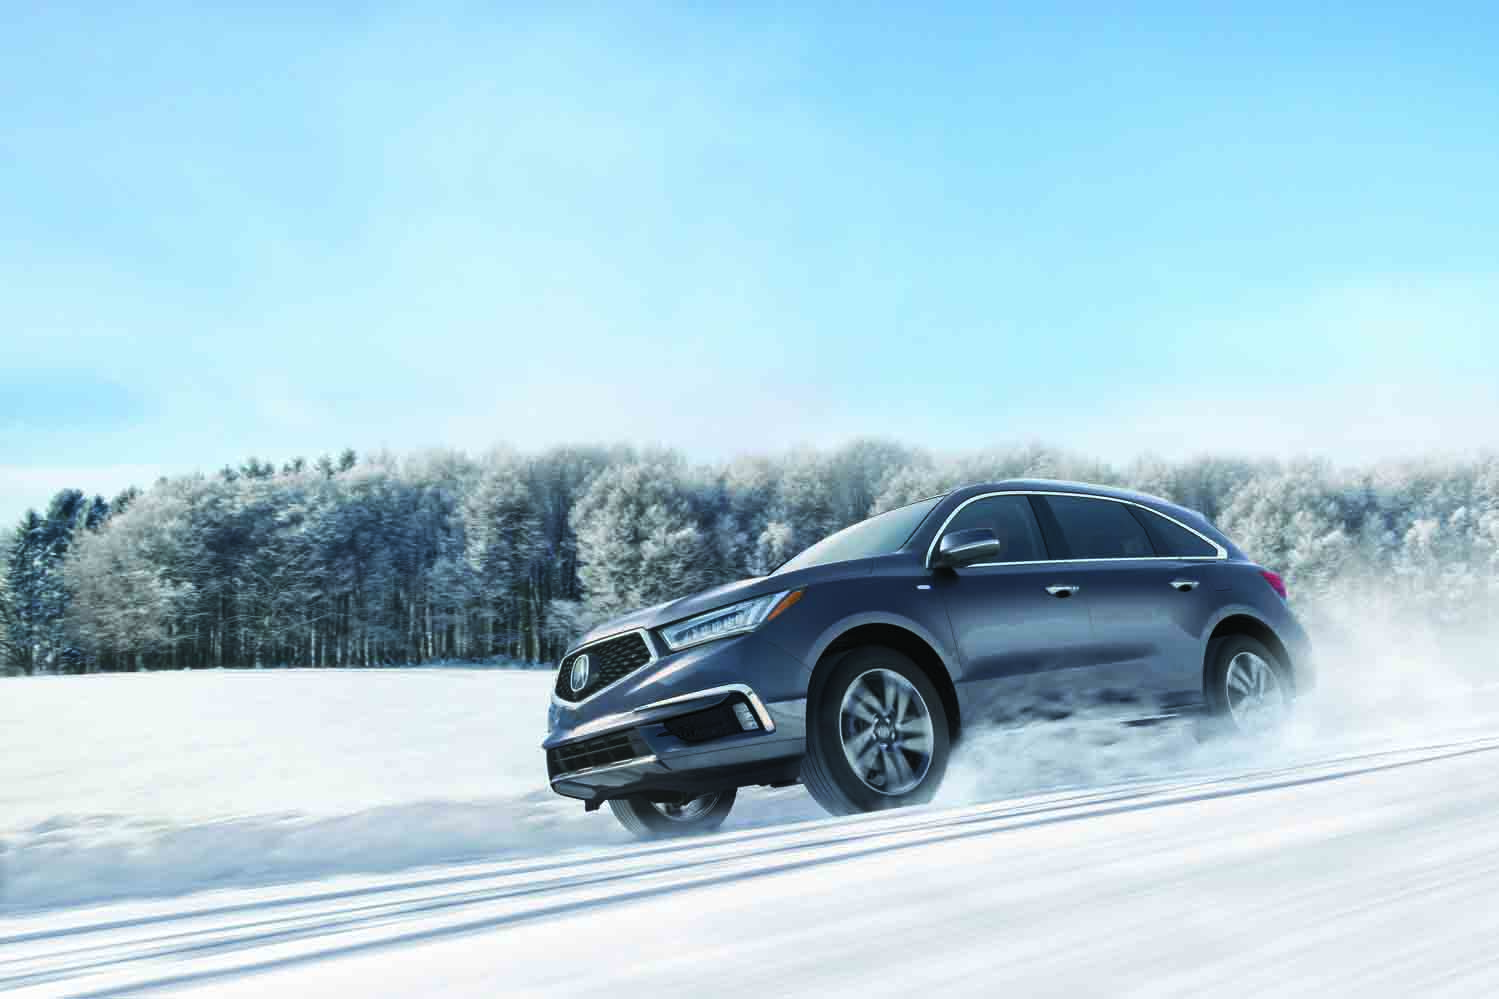 Luxury SUV or Crossover available in Seattle, WA at Acura of Bellevue